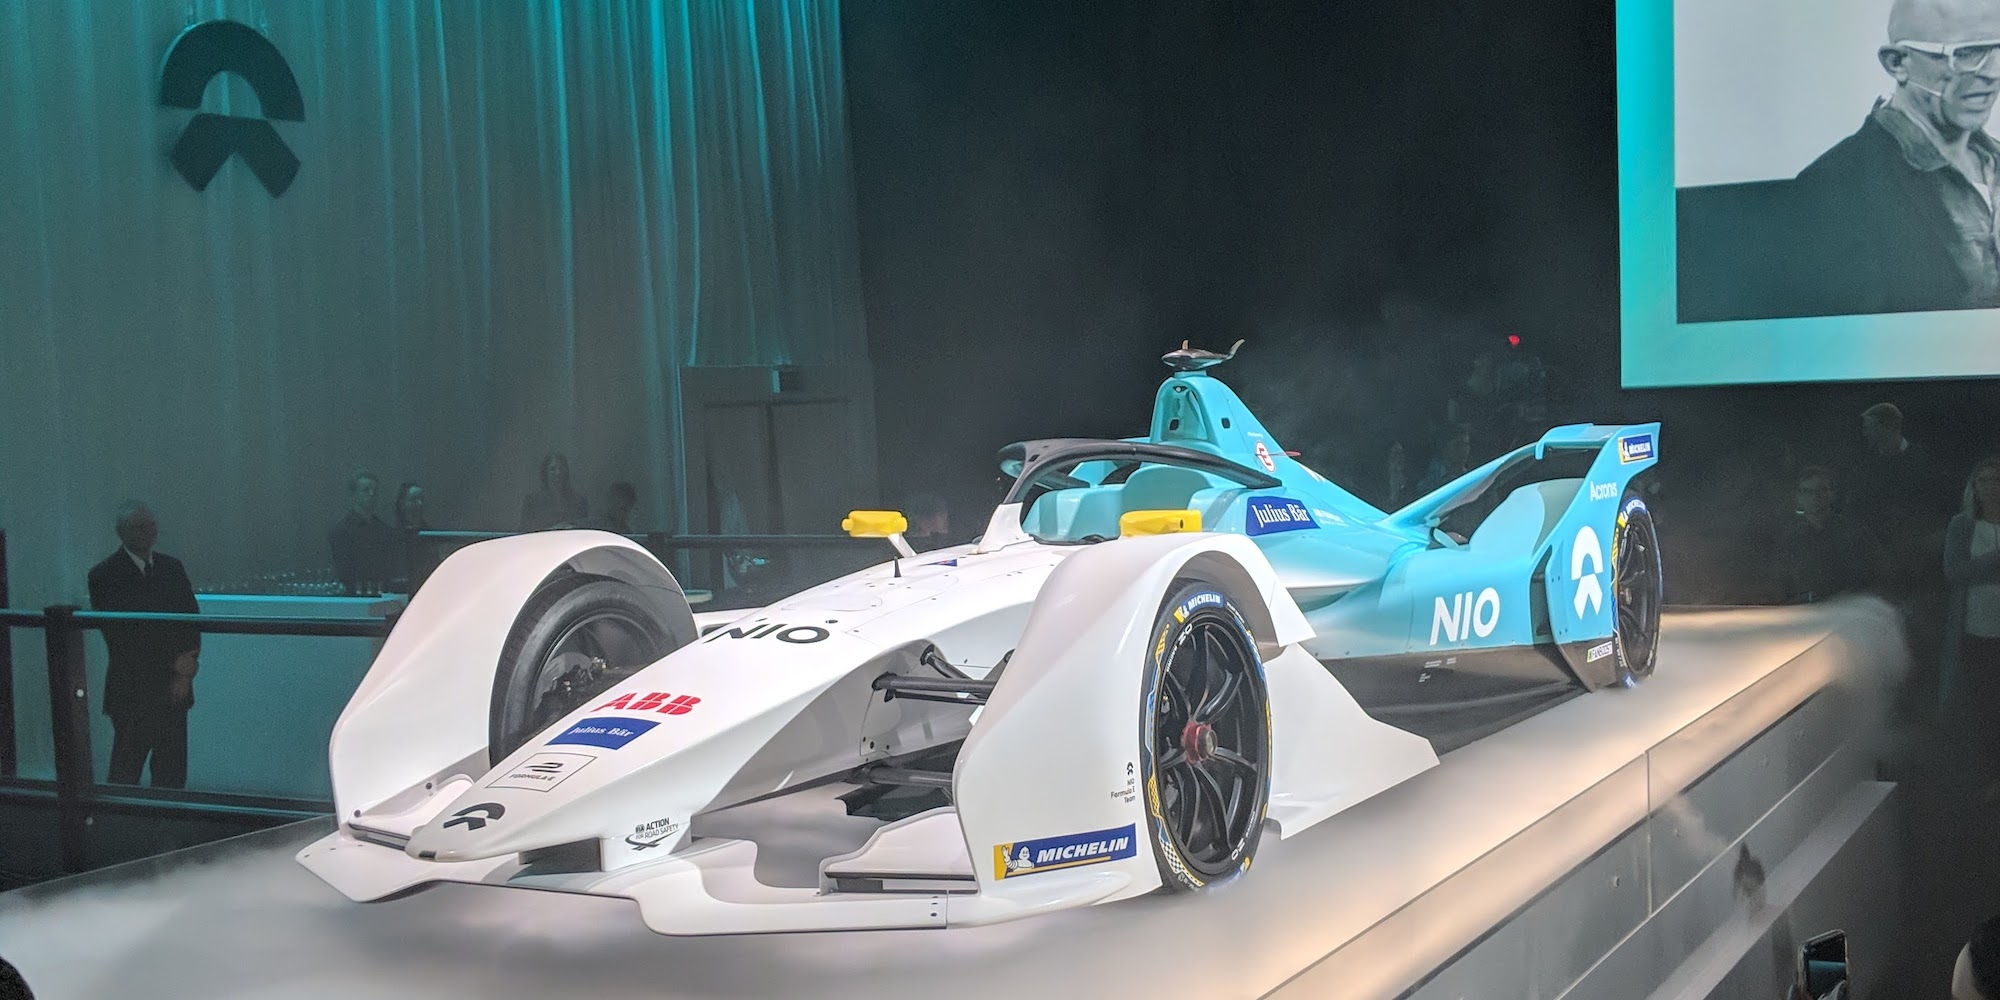 Nio unveils its 2019 Formula E racer as Tesla investor Baillie Gifford takes huge 11% stake